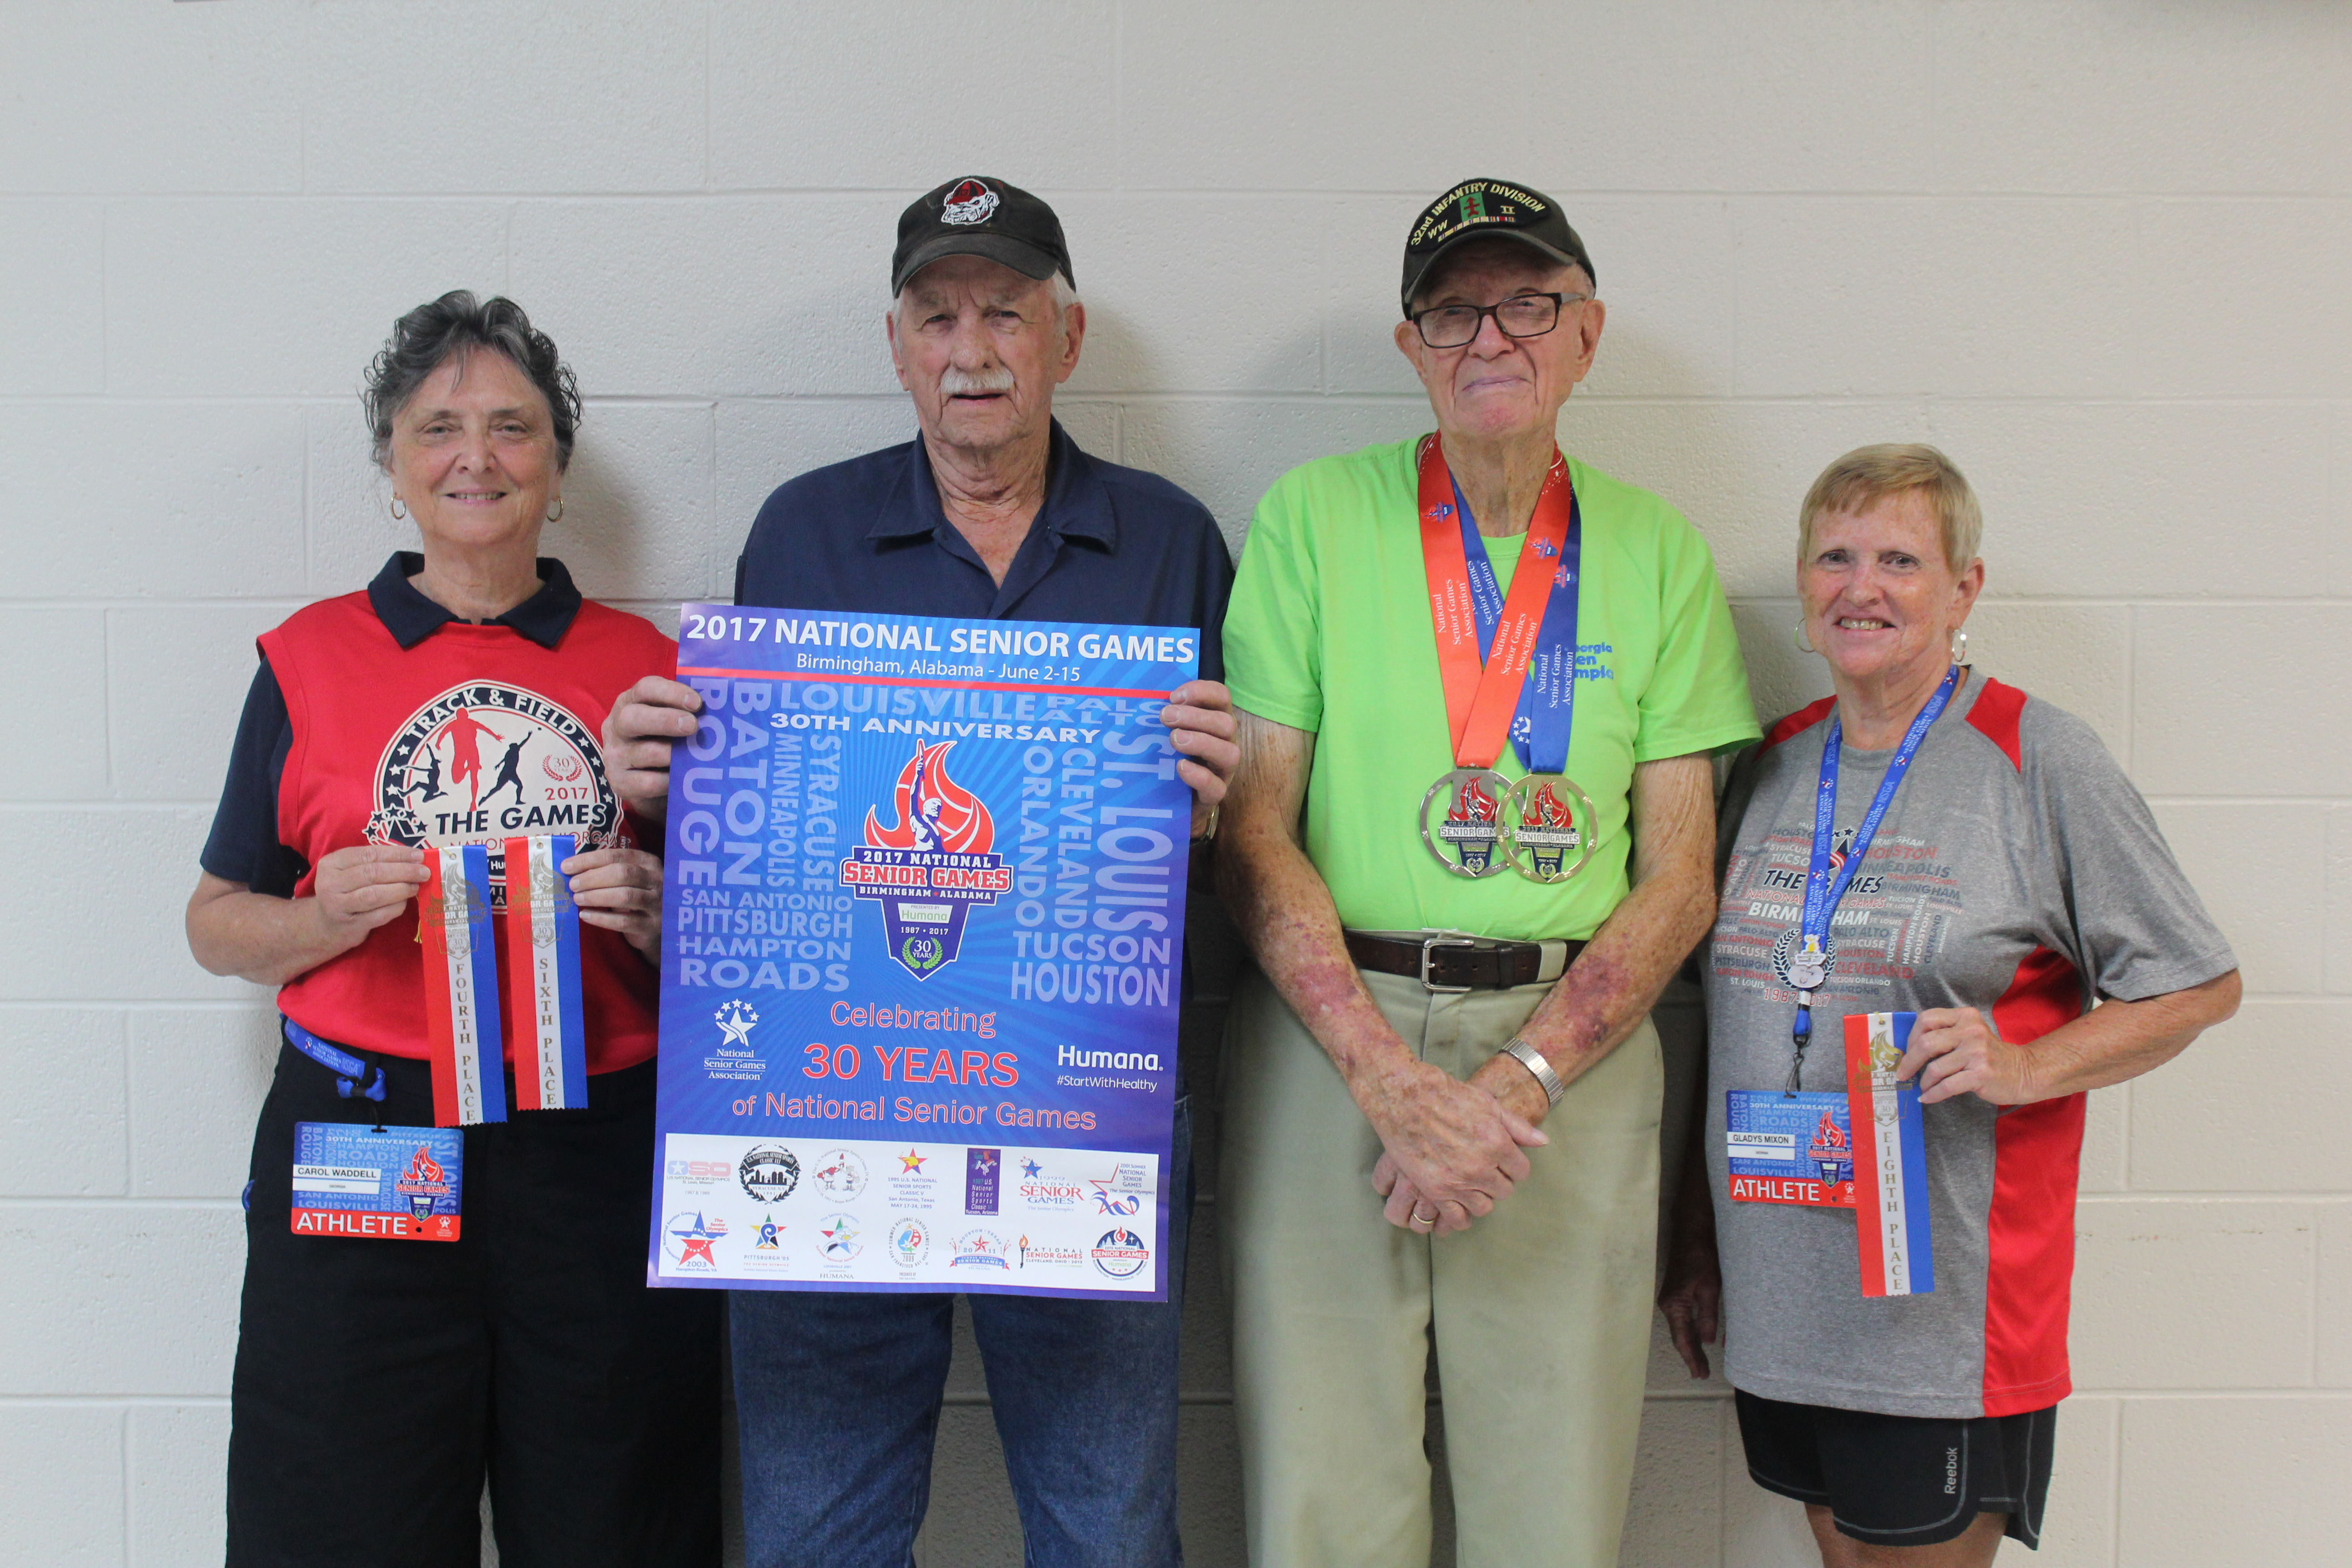 4 Floyd County Residents bring home awards from 2017 National Senior Games